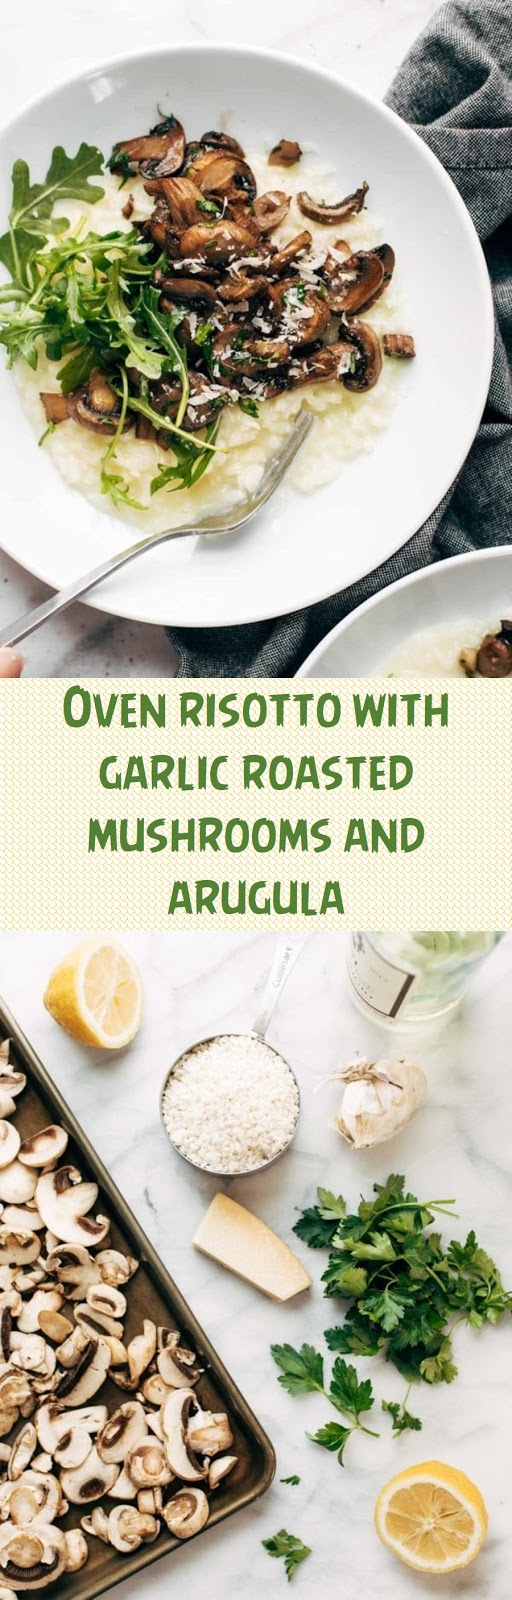 Oven risotto with garlic roasted mushrooms and arugula